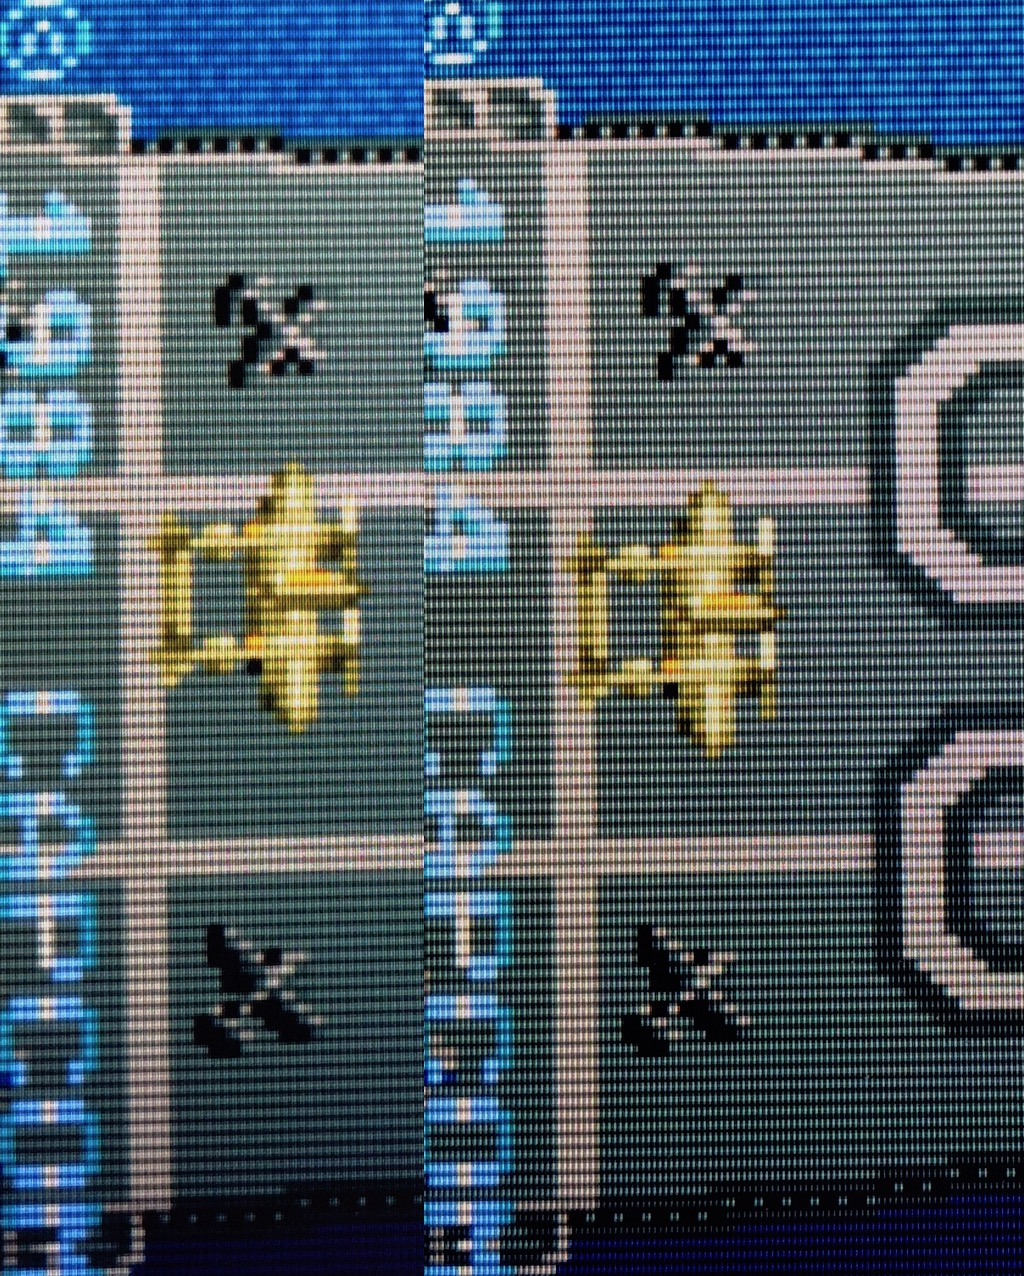 New CRT/LCD shaders for RPI3  They run at 60fps at higher